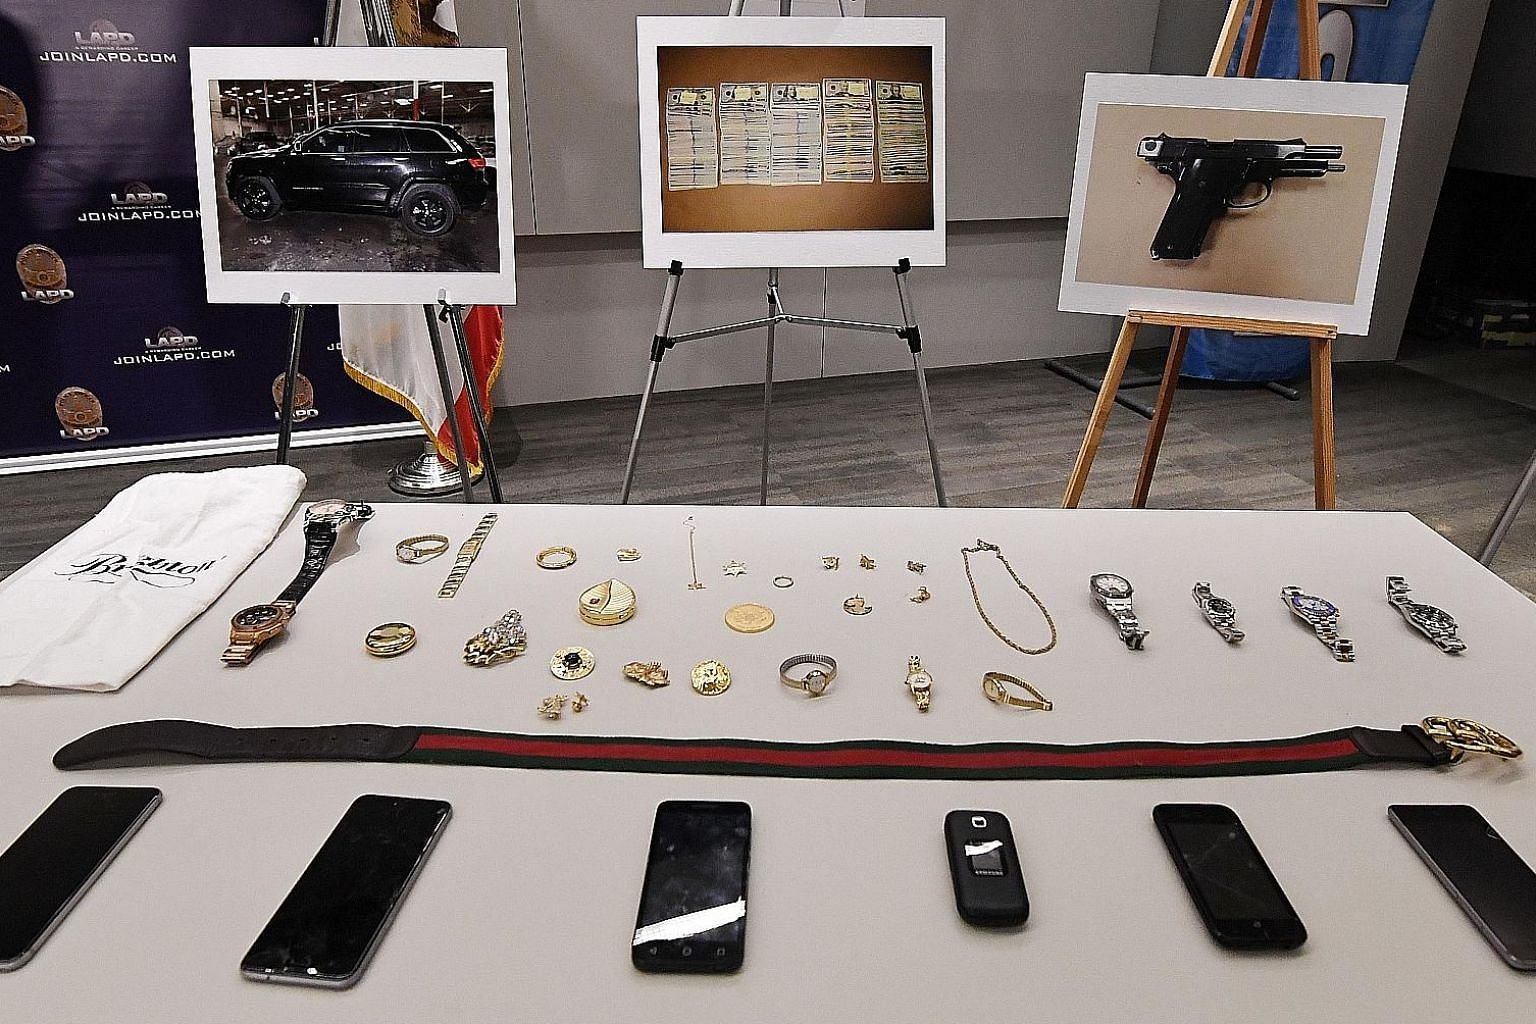 Stolen goods on display at a Los Angeles Police Department press conference to announce the arrest of four suspects in connection with a spate of high-profile burglaries at the homes of singers, sportsmen and other celebrities in Los Angeles, Califor